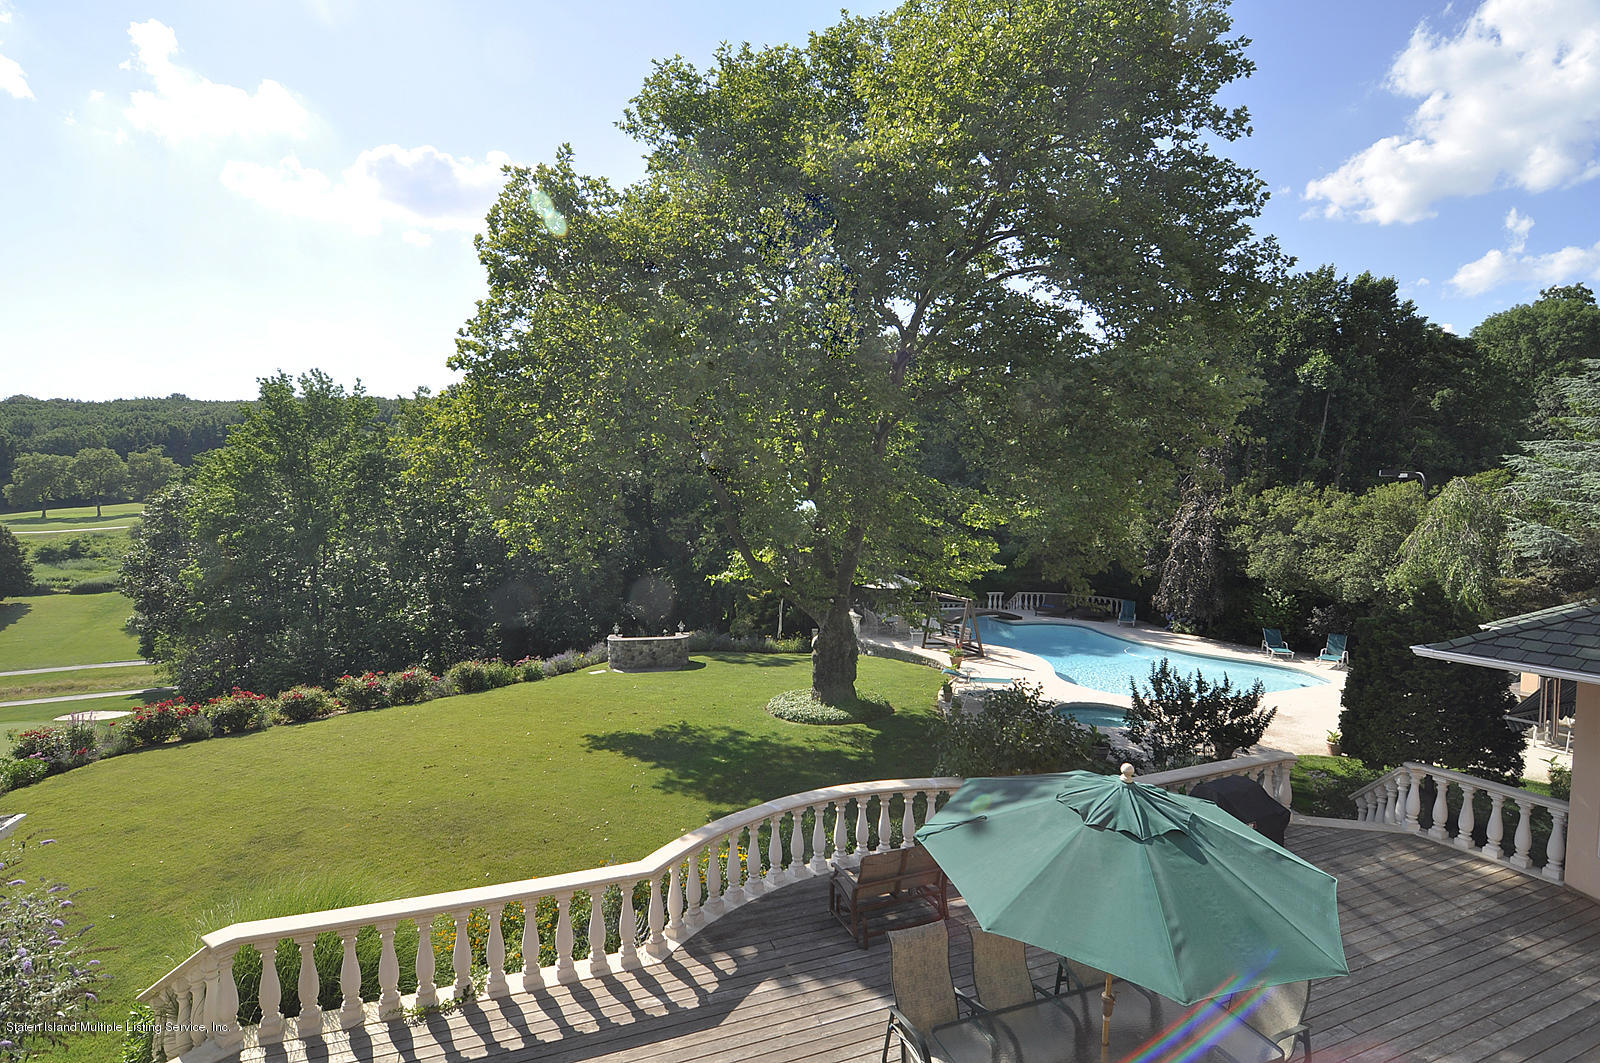 Single Family - Detached 738 Todt Hill Road  Staten Island, NY 10301, MLS-1127956-11